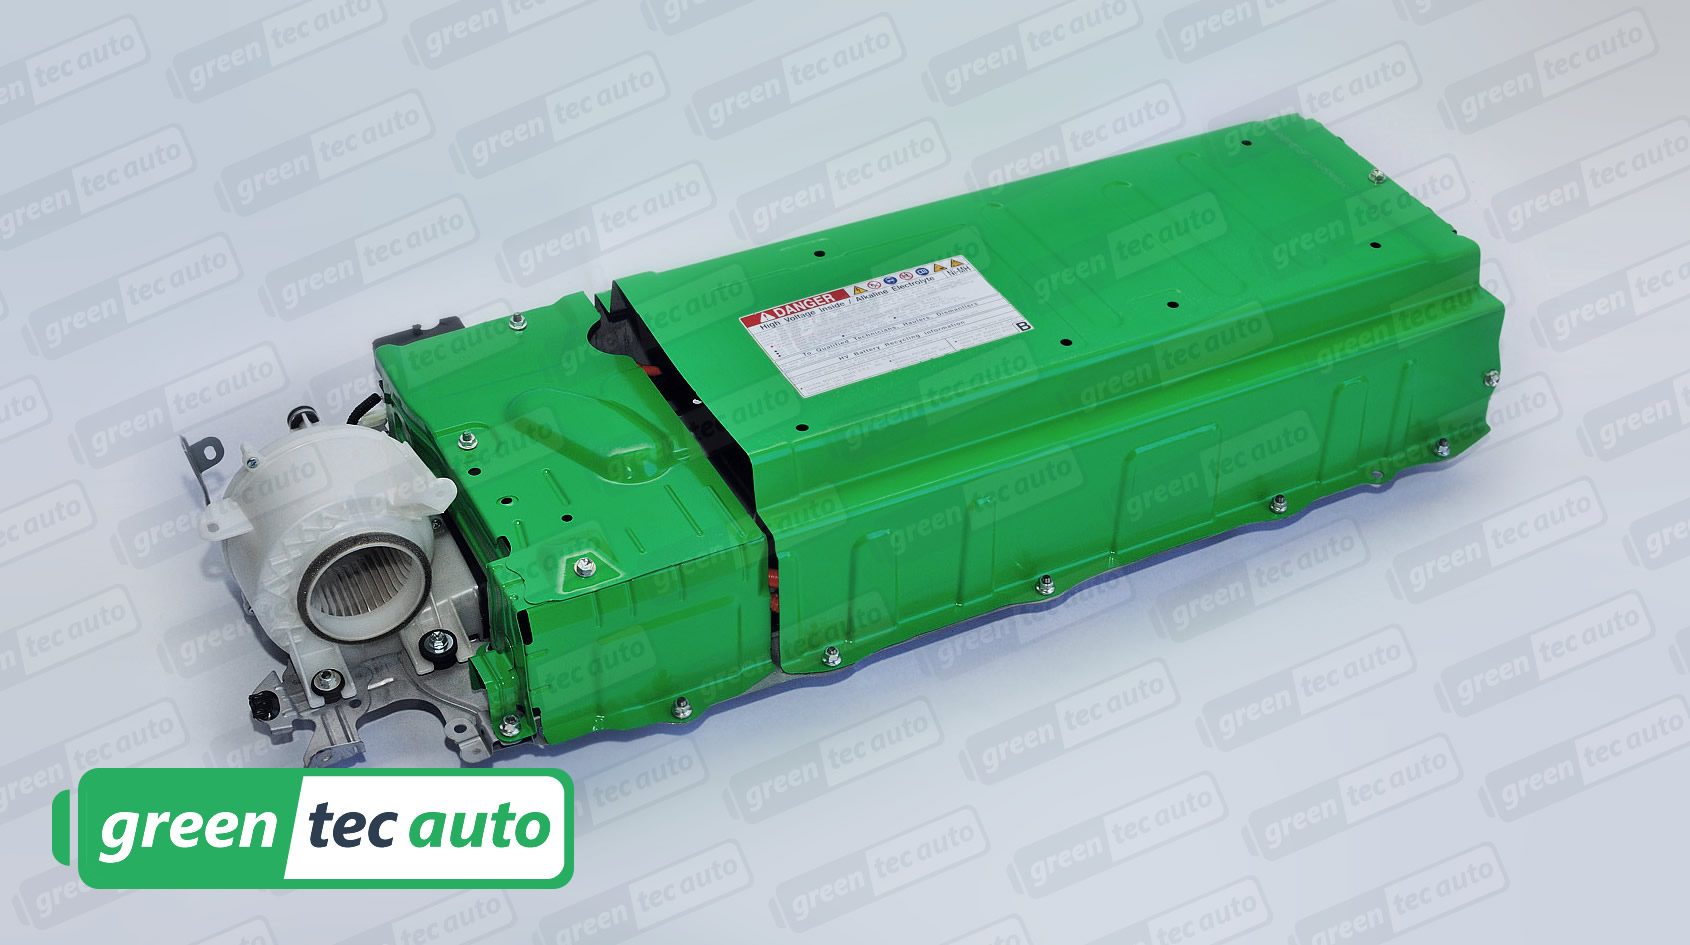 toyota prius gen 3 hybrid battery replacement rh greentecauto com toyota prius hybrid battery life expectancy toyota prius hybrid battery replacement